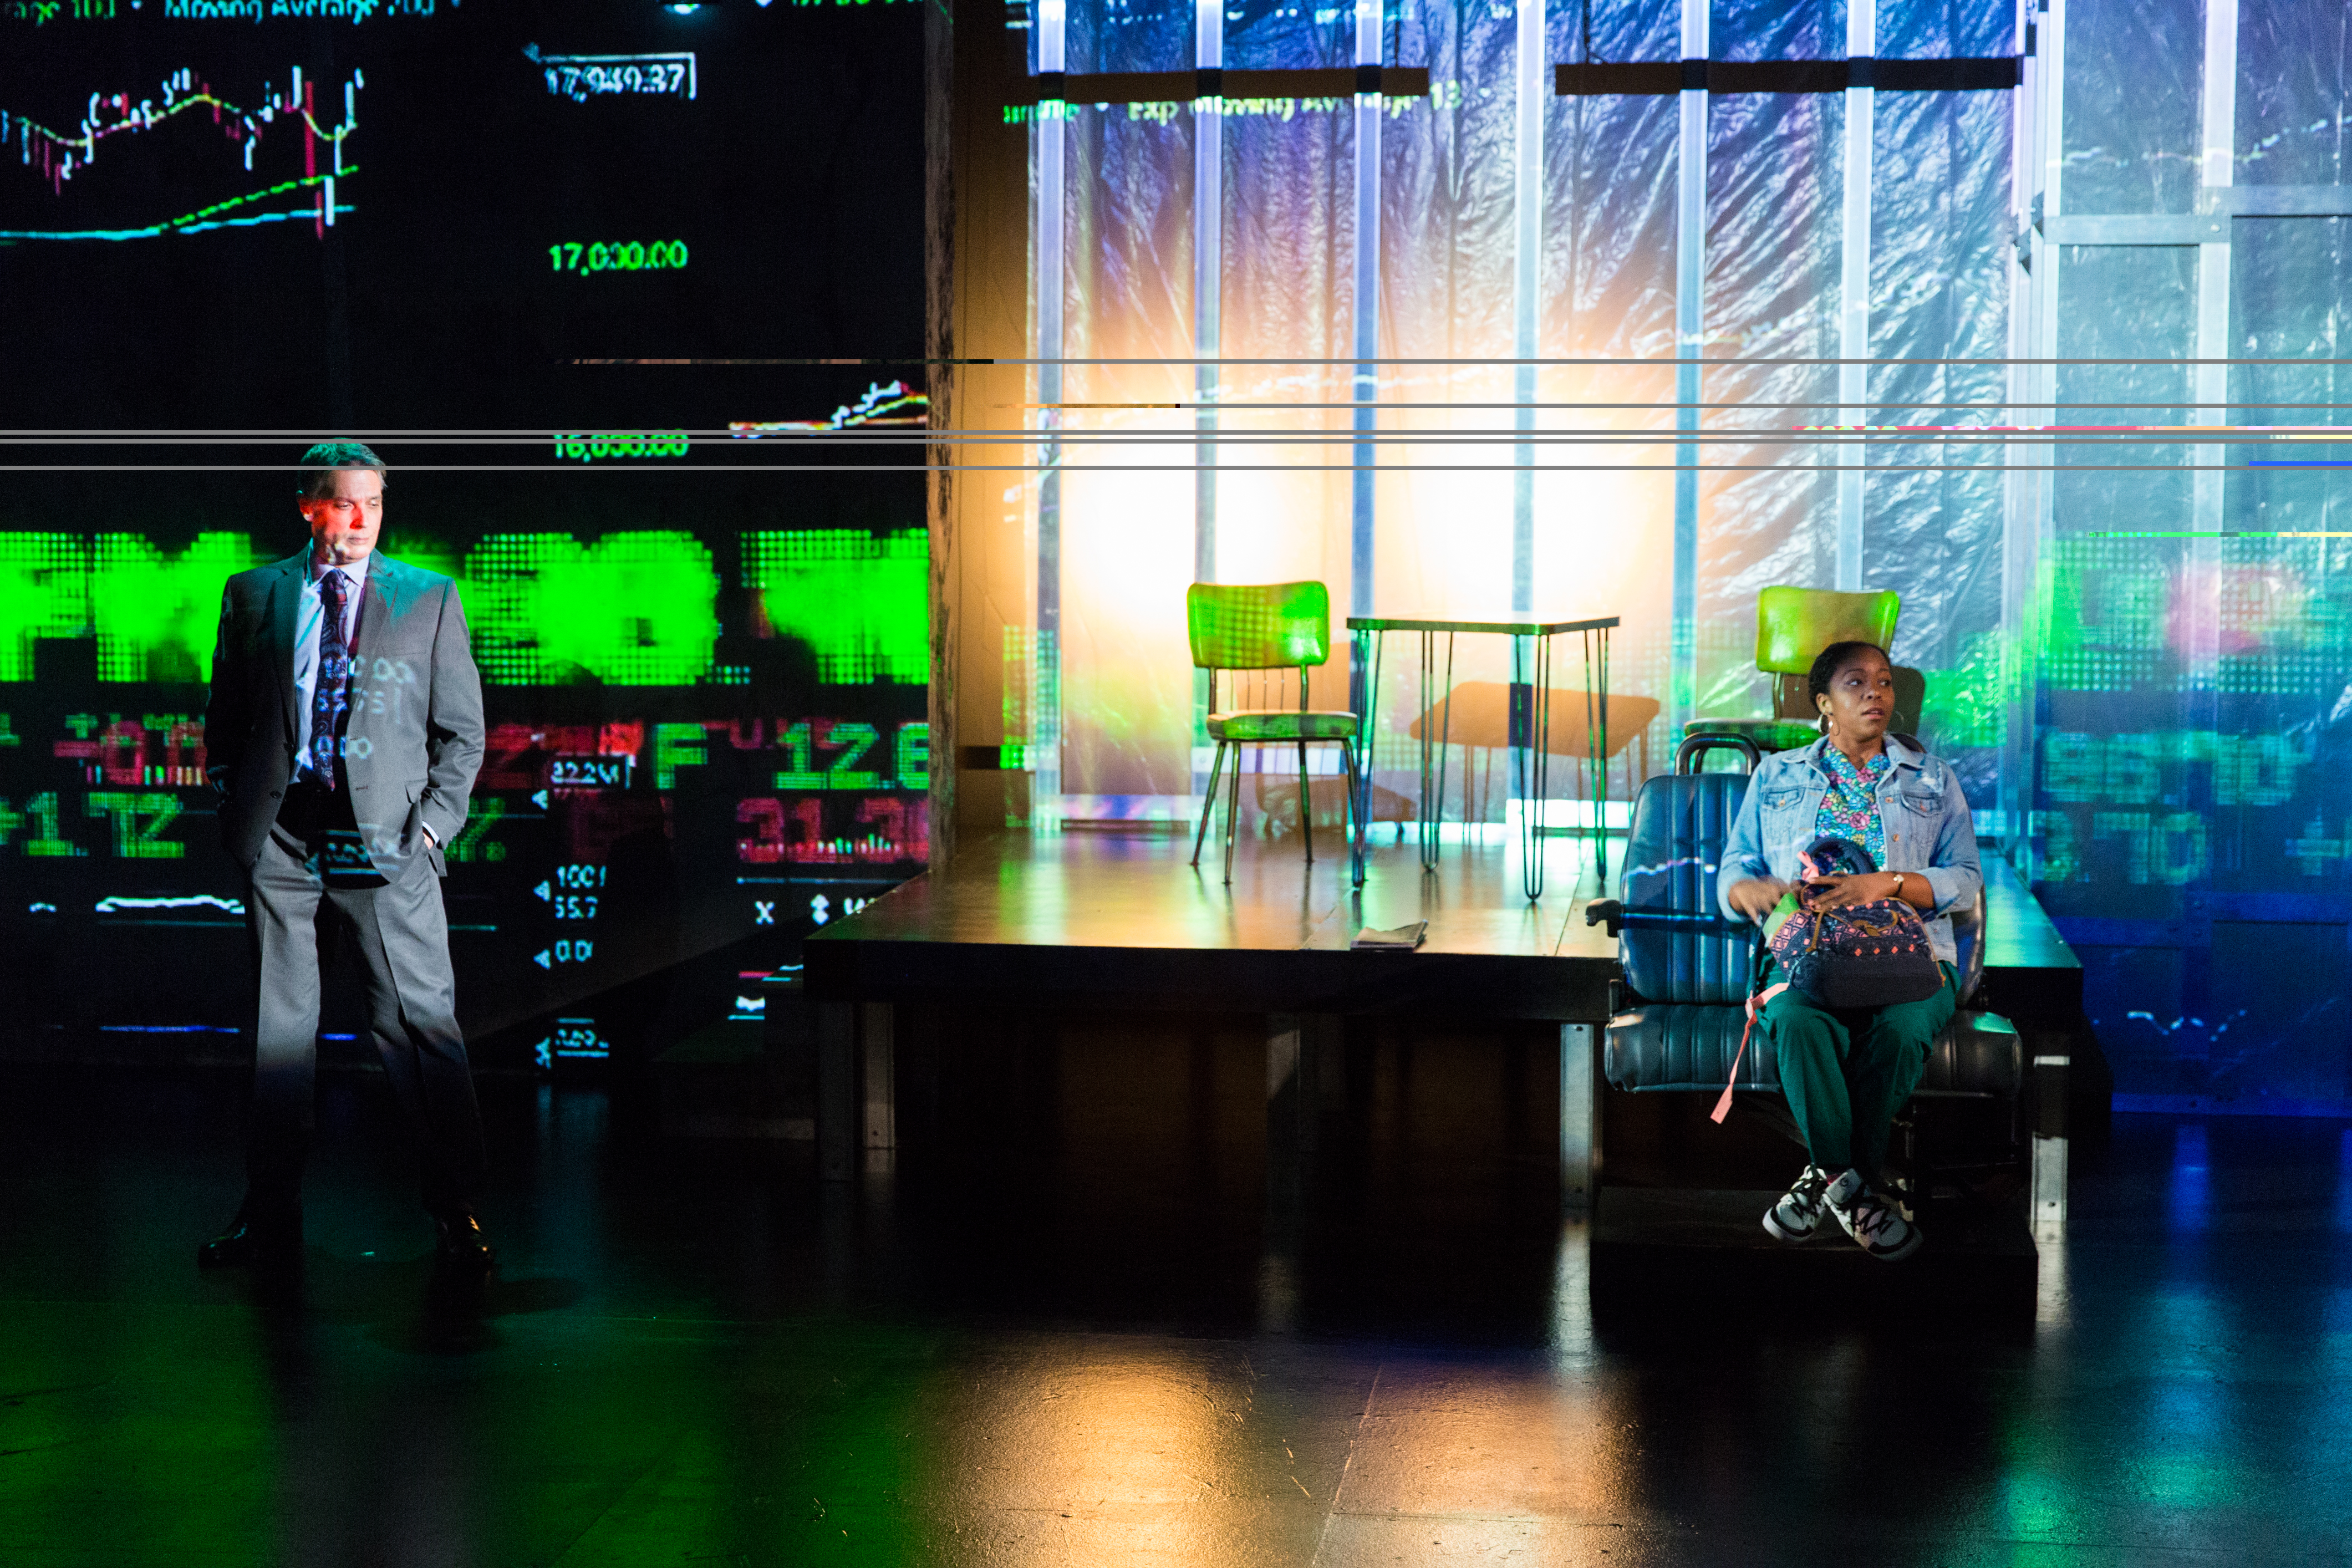 BWW Review: WHITE GUY ON THE BUS at Delaware Theatre Company